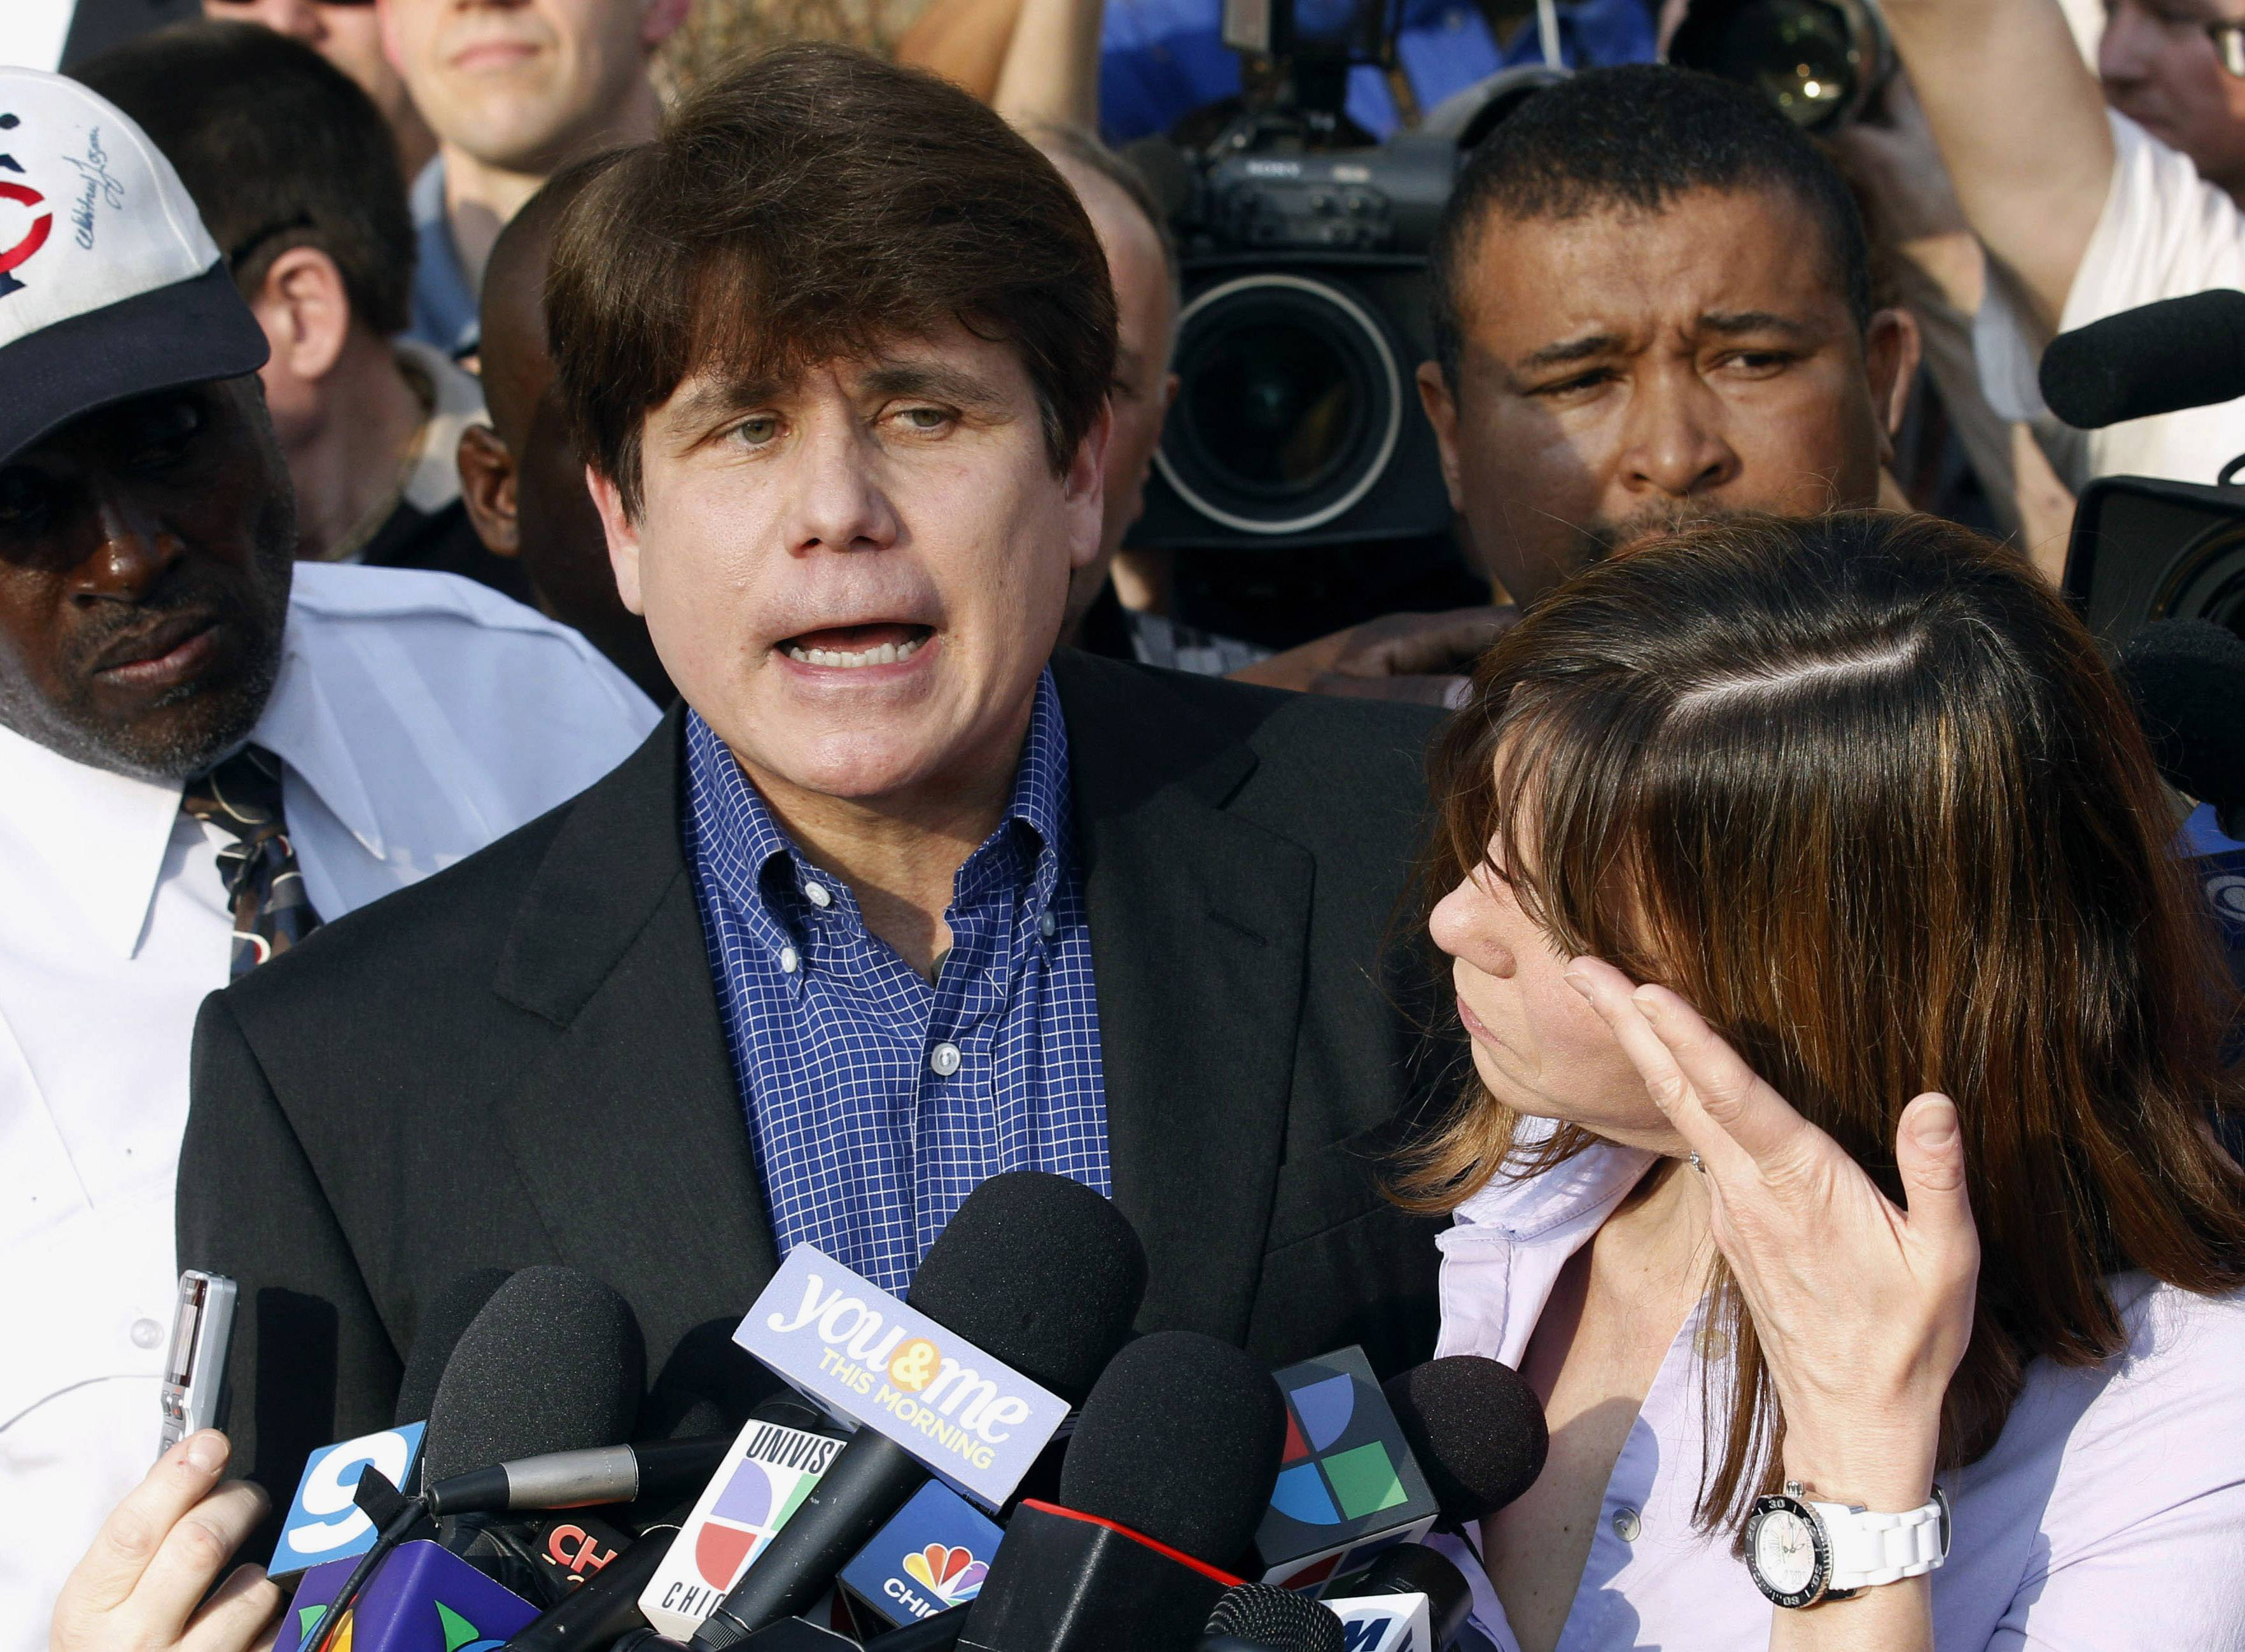 Former Gov. Rod Blagojevich is serving a 14-year federal prison sentence for corruption. He has been in custody in Colorado for six years.